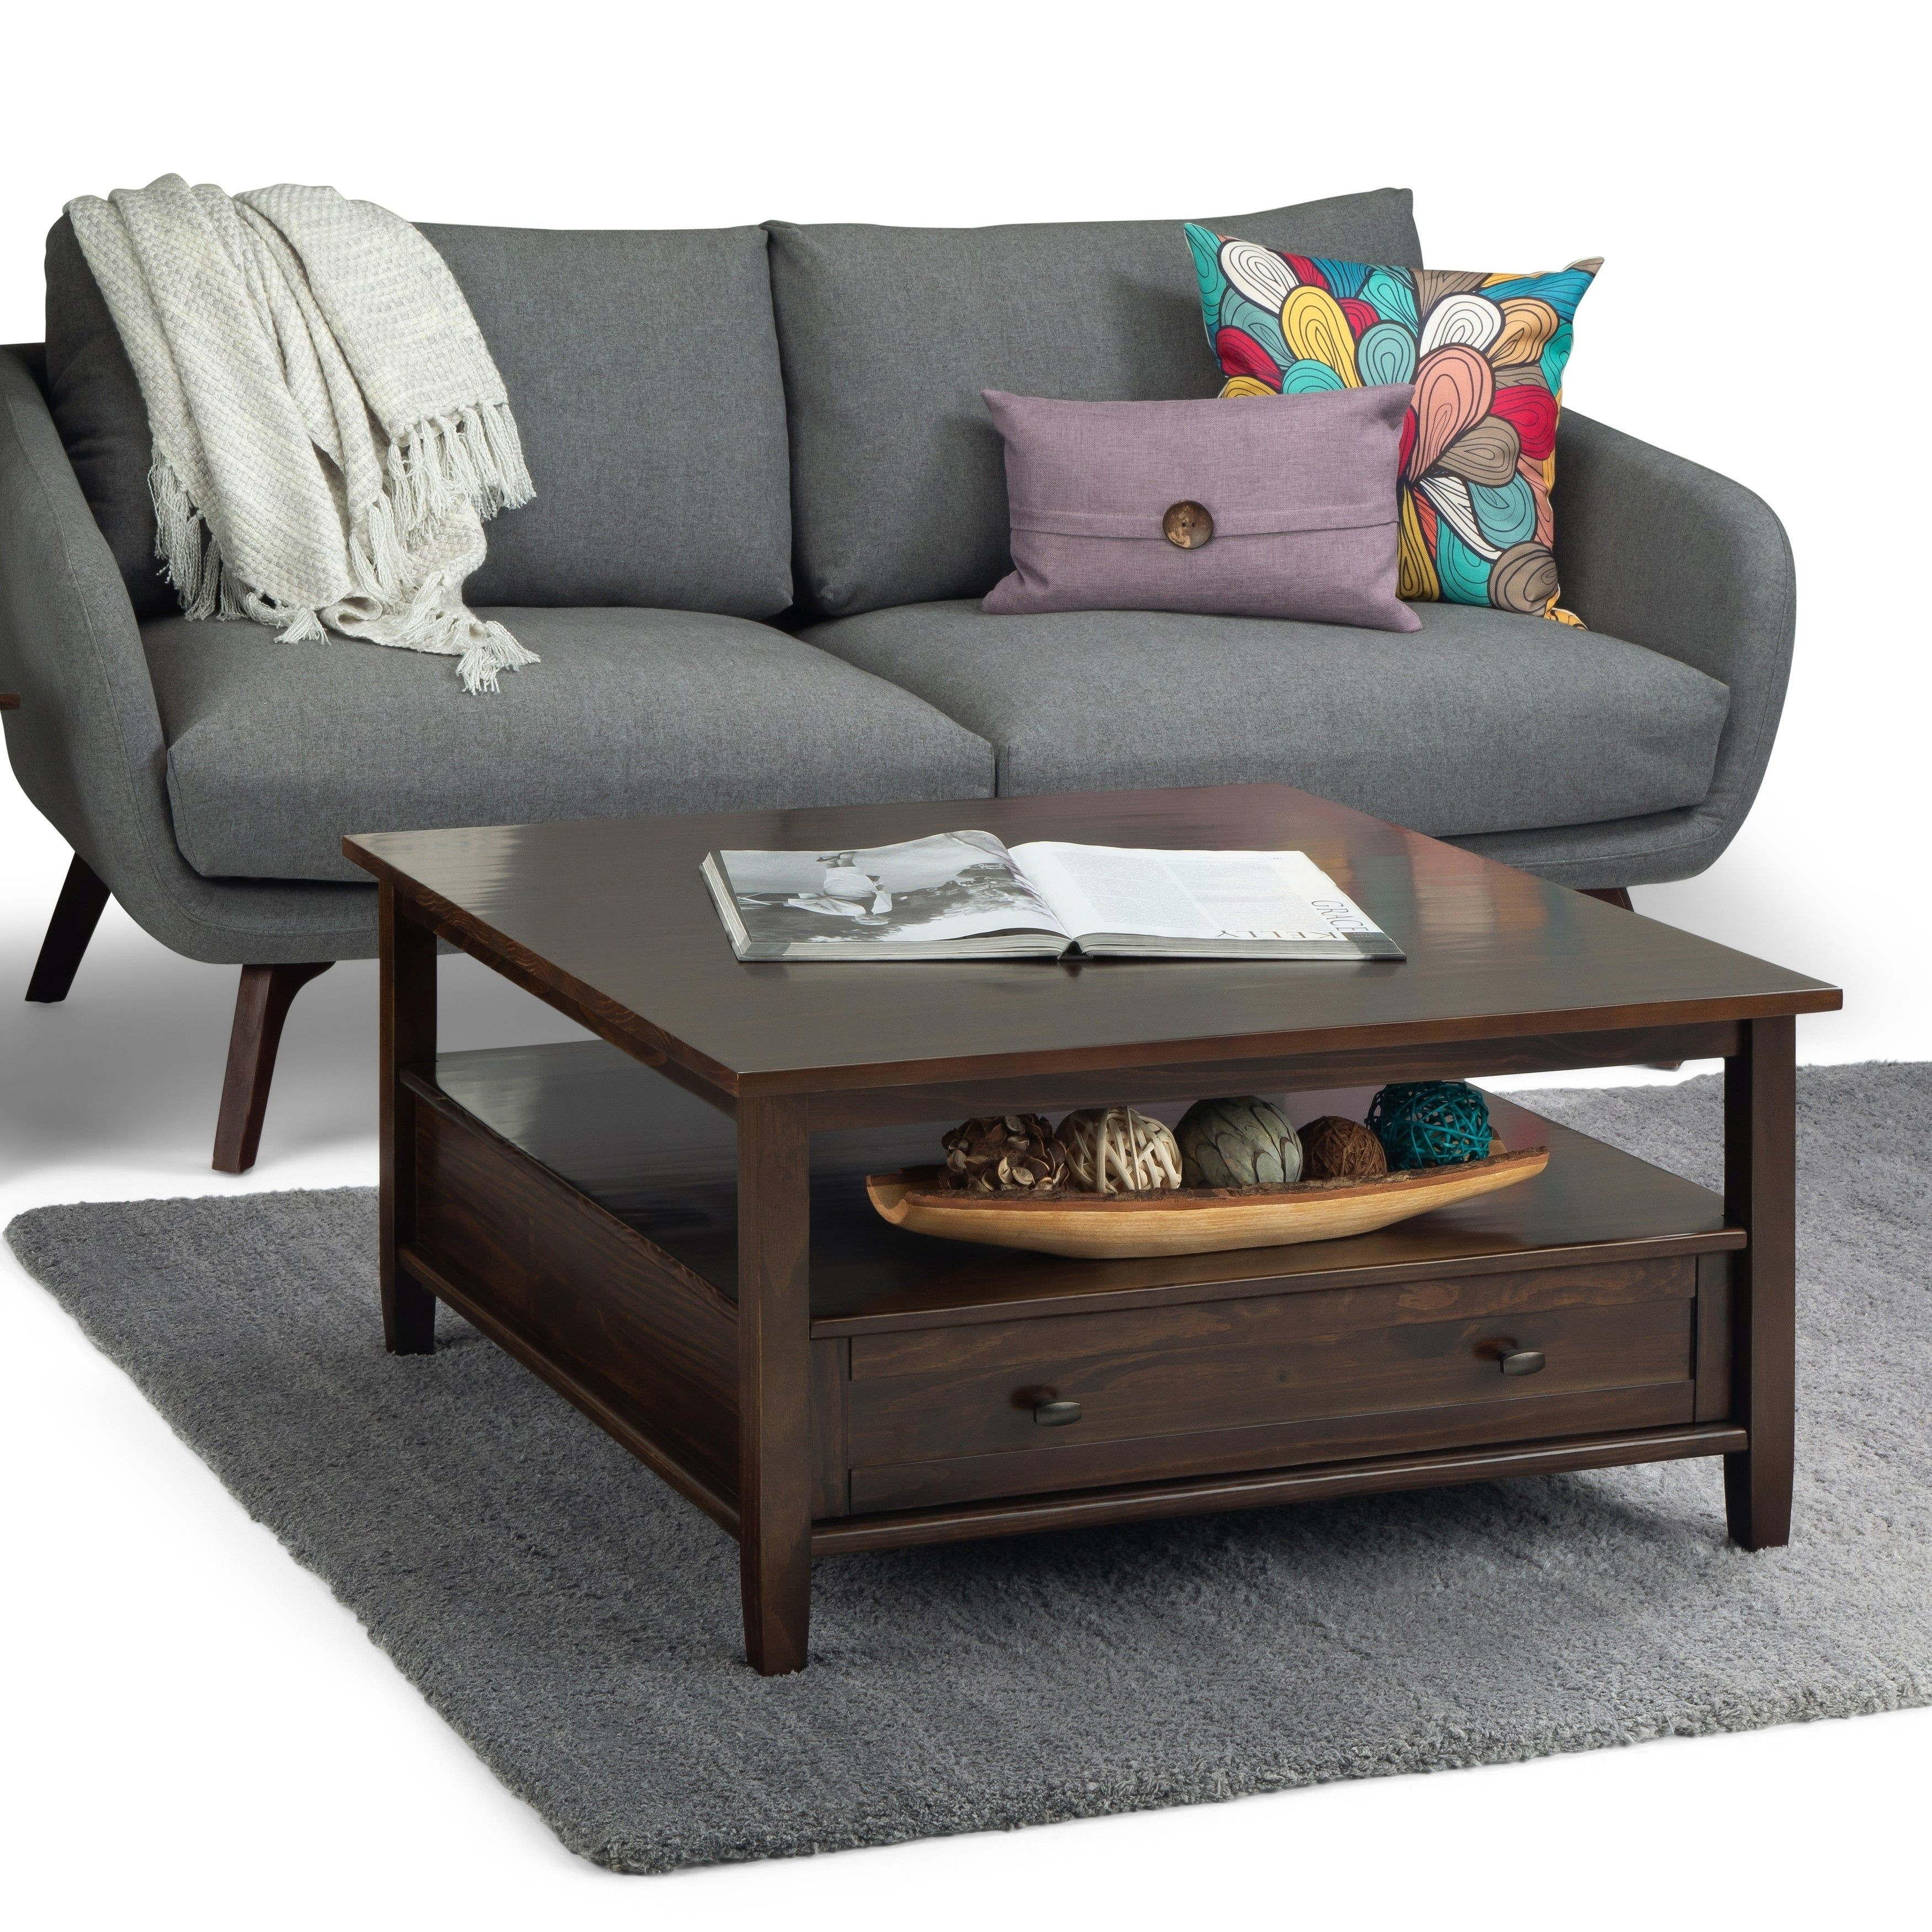 Overstock Com Online Shopping Bedding Furniture Electronics Jewelry Clothing More Coffee Table Square Wood Coffee Table Rustic Coffee Table [ 3500 x 3500 Pixel ]